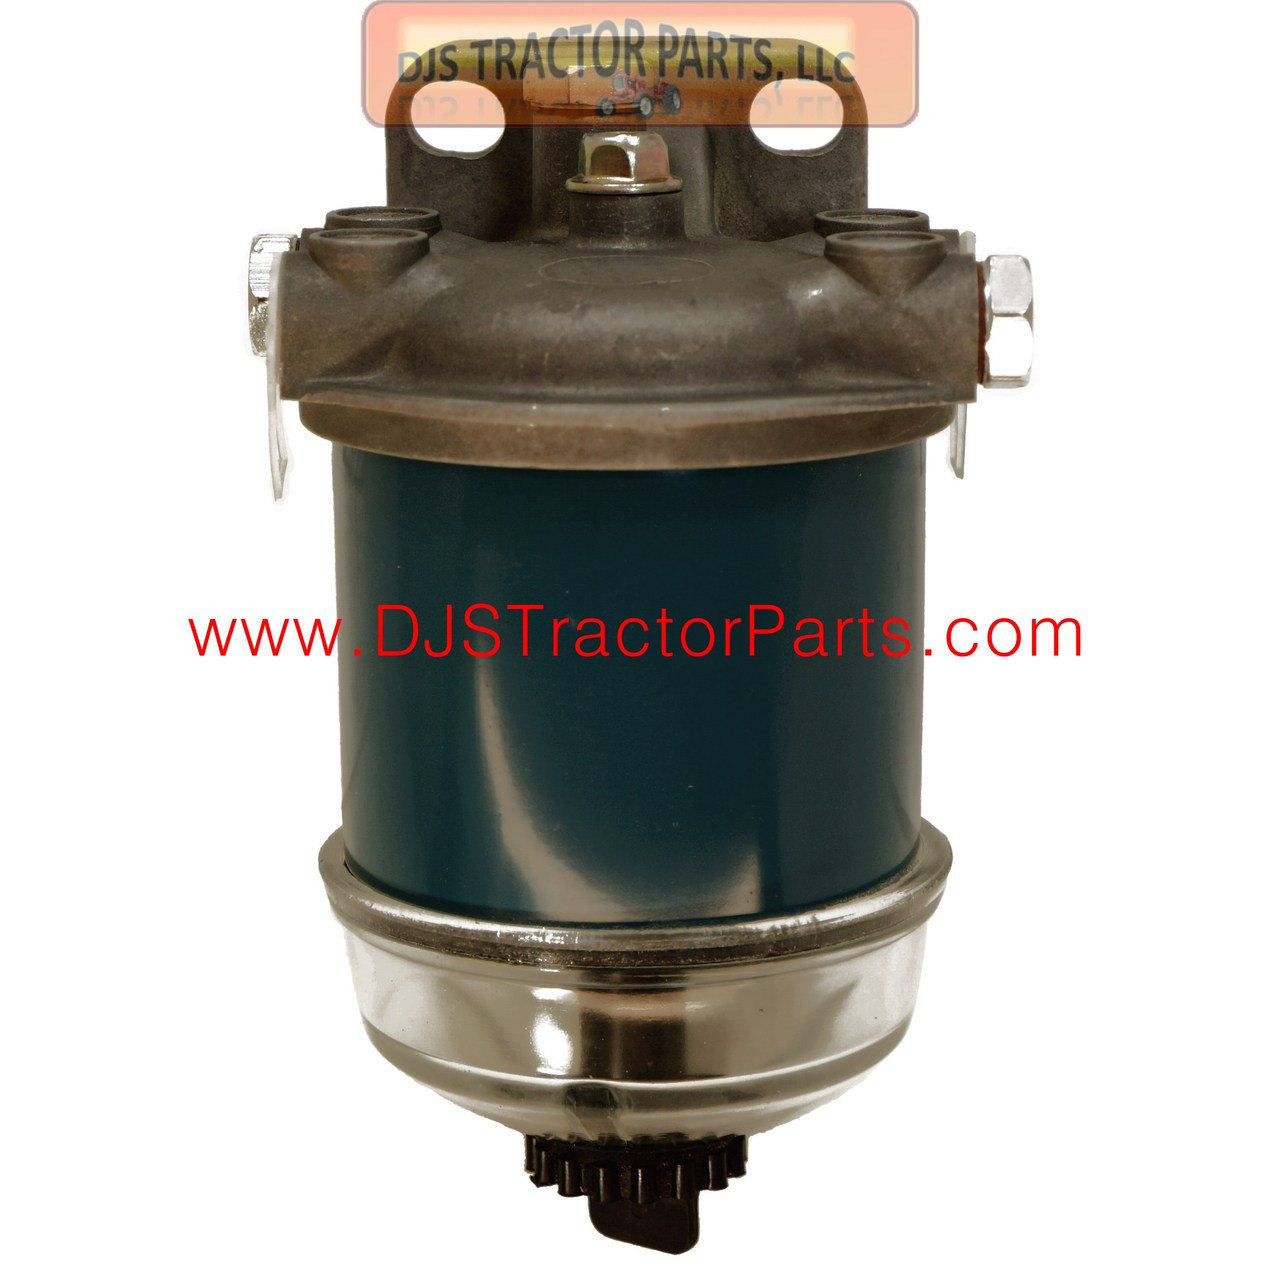 diesel single fuel filter assembly with glass bowl ab 1423d djsdiesel single fuel filter assembly with [ 1280 x 1280 Pixel ]